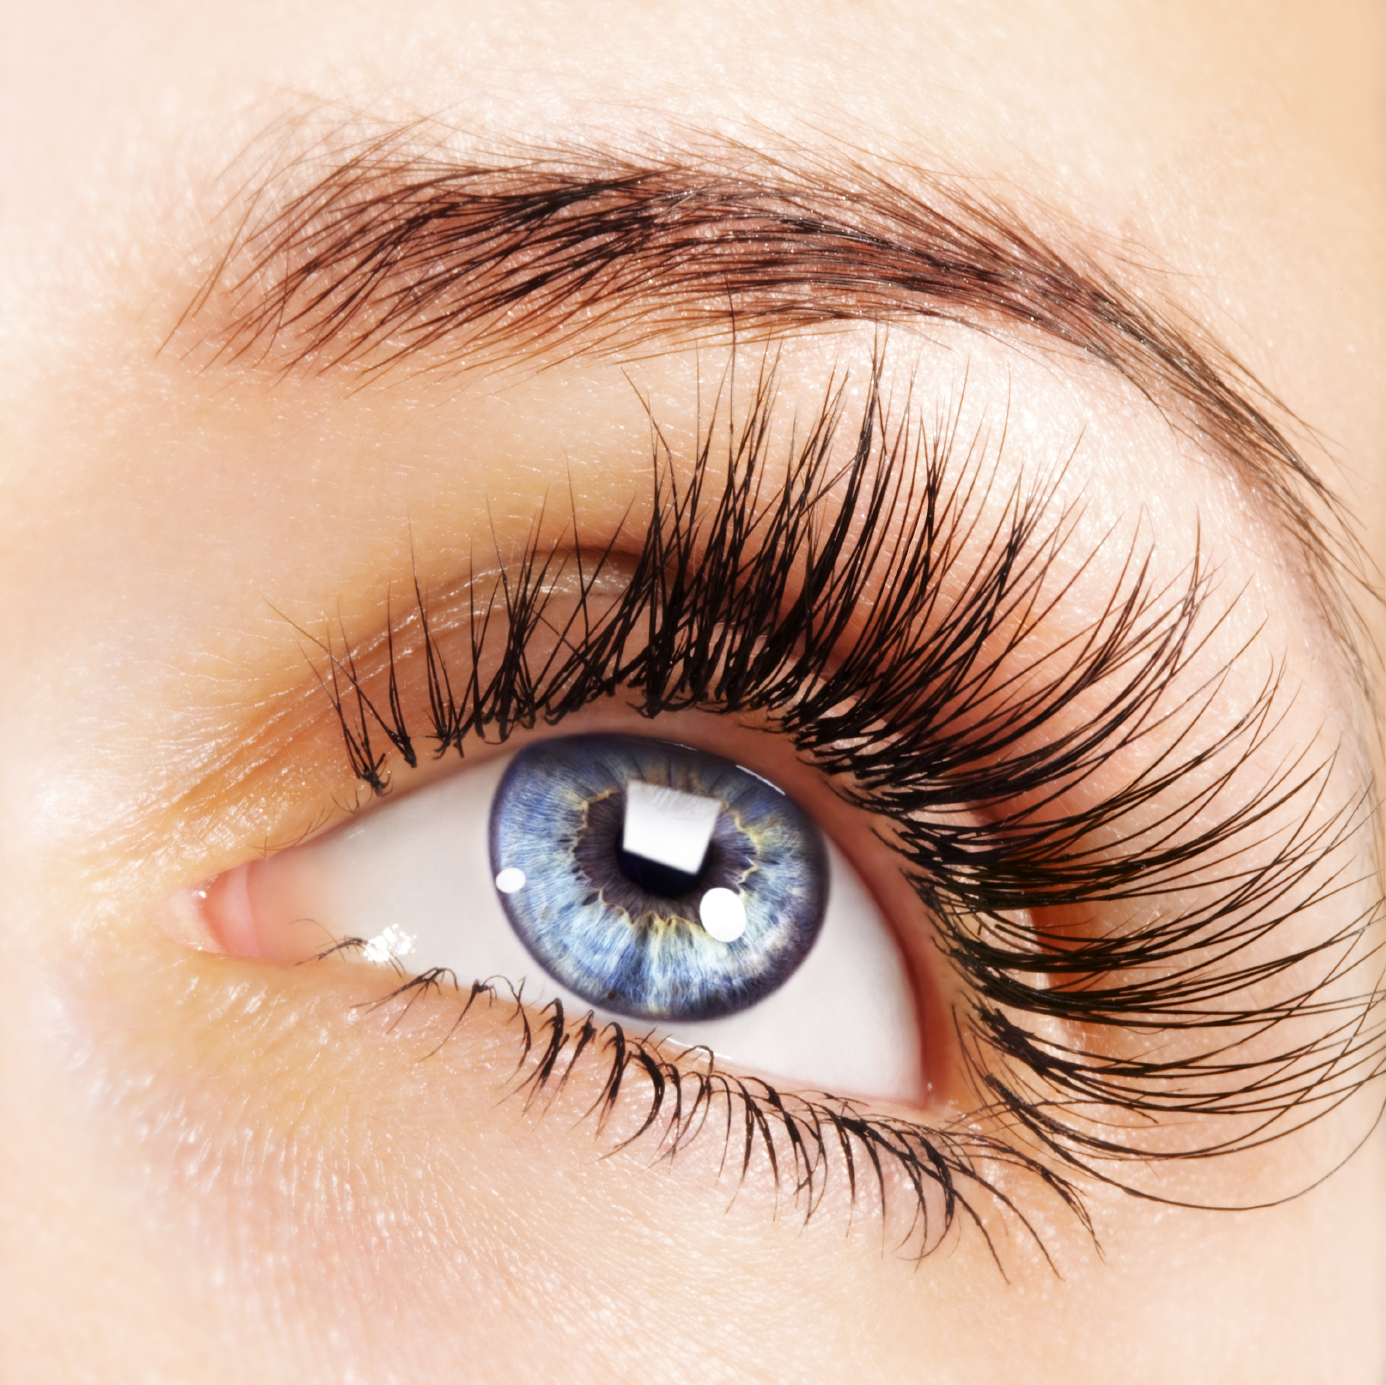 coat lashes in it everyday to grow them